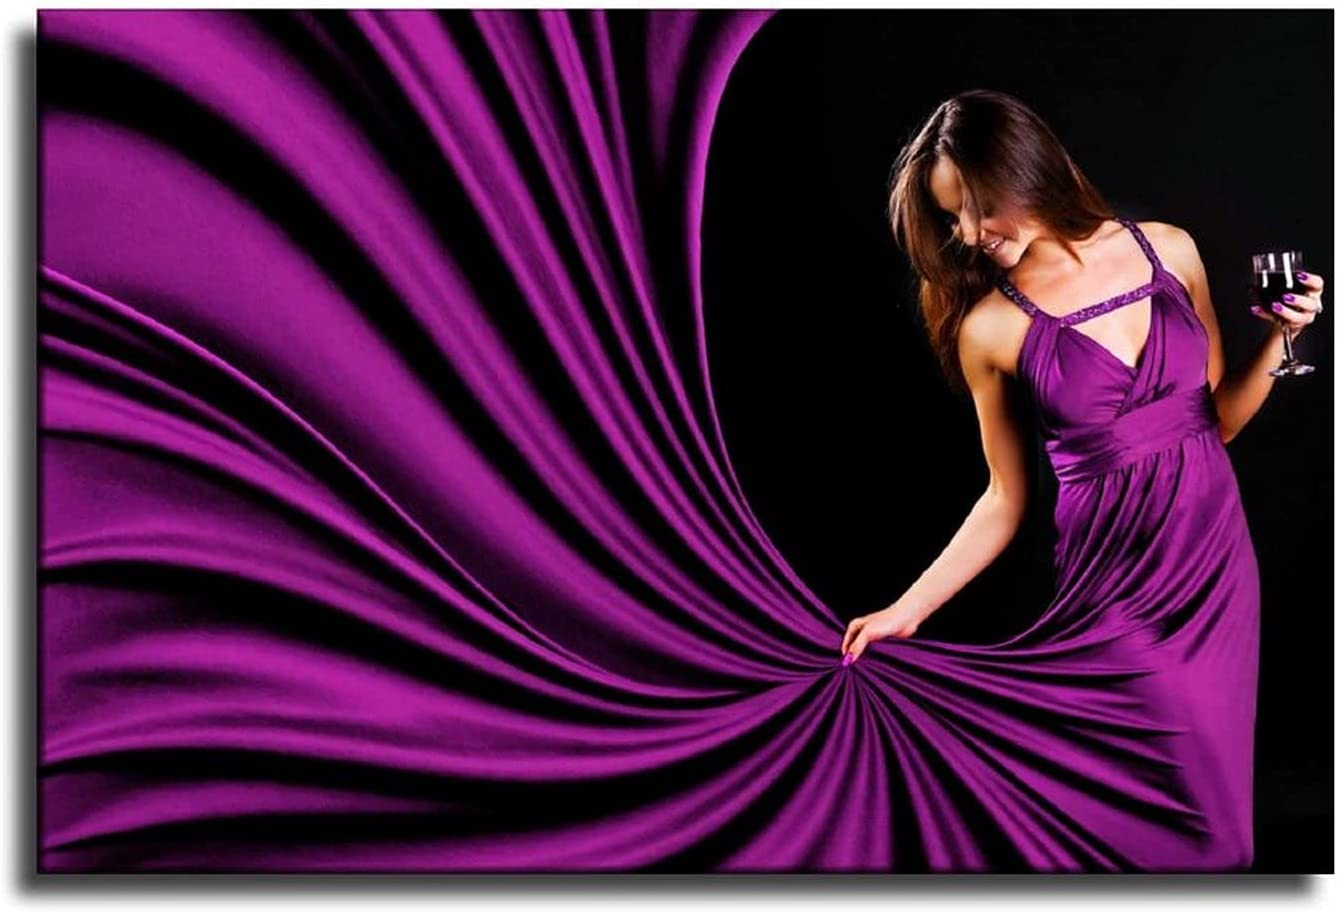 Wedding Party Purple Evening Dress Girl Poster Colorado Springs Mall Wall Ultra-Cheap Deals Art Home Wal